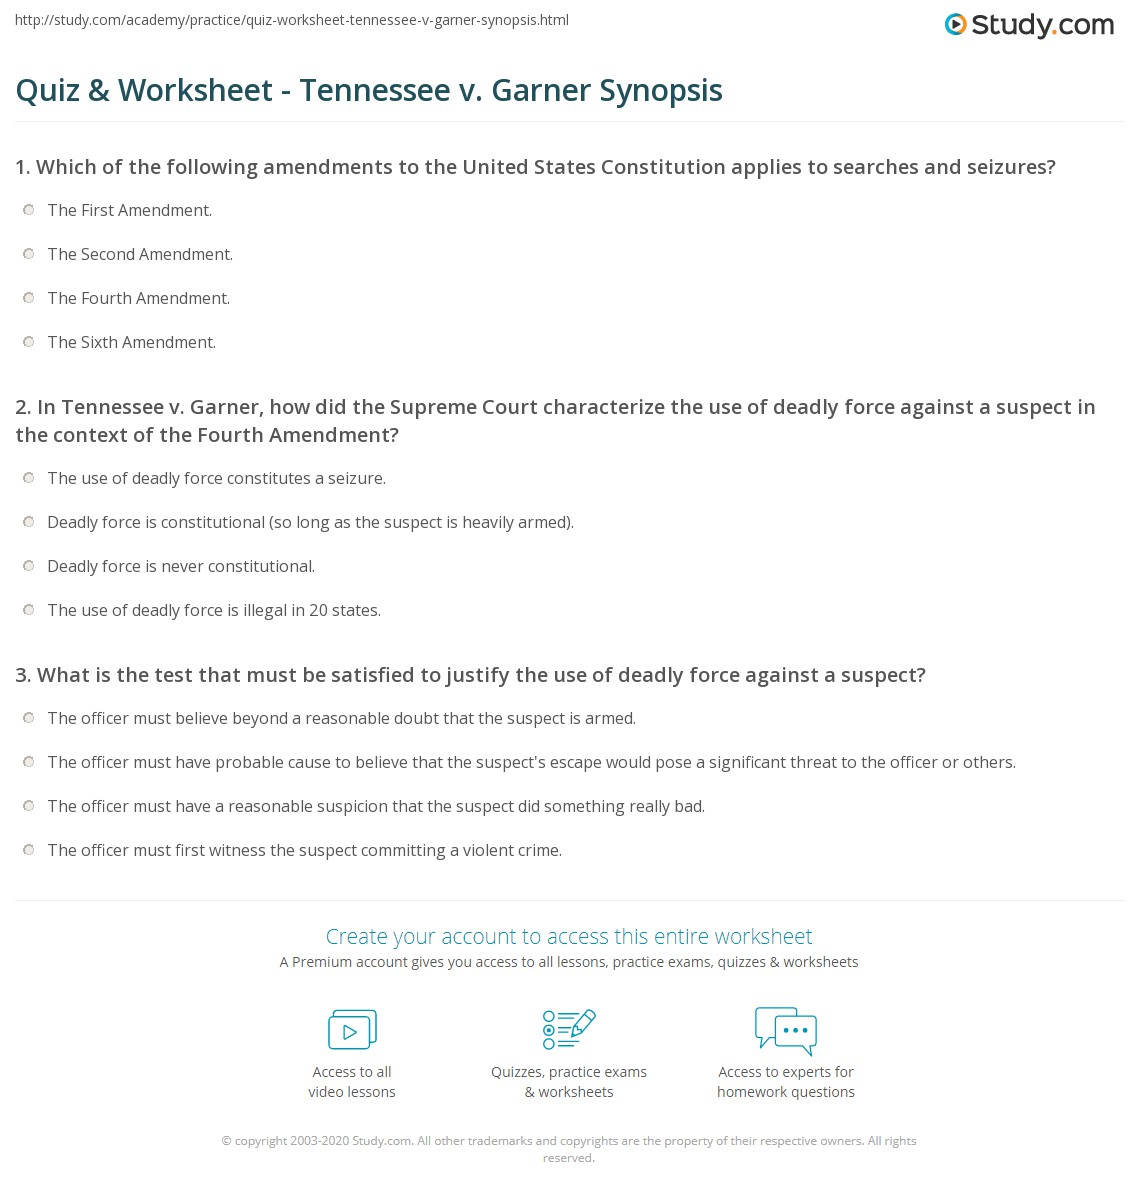 Collection of Child Support Worksheet Tn - Sharebrowse